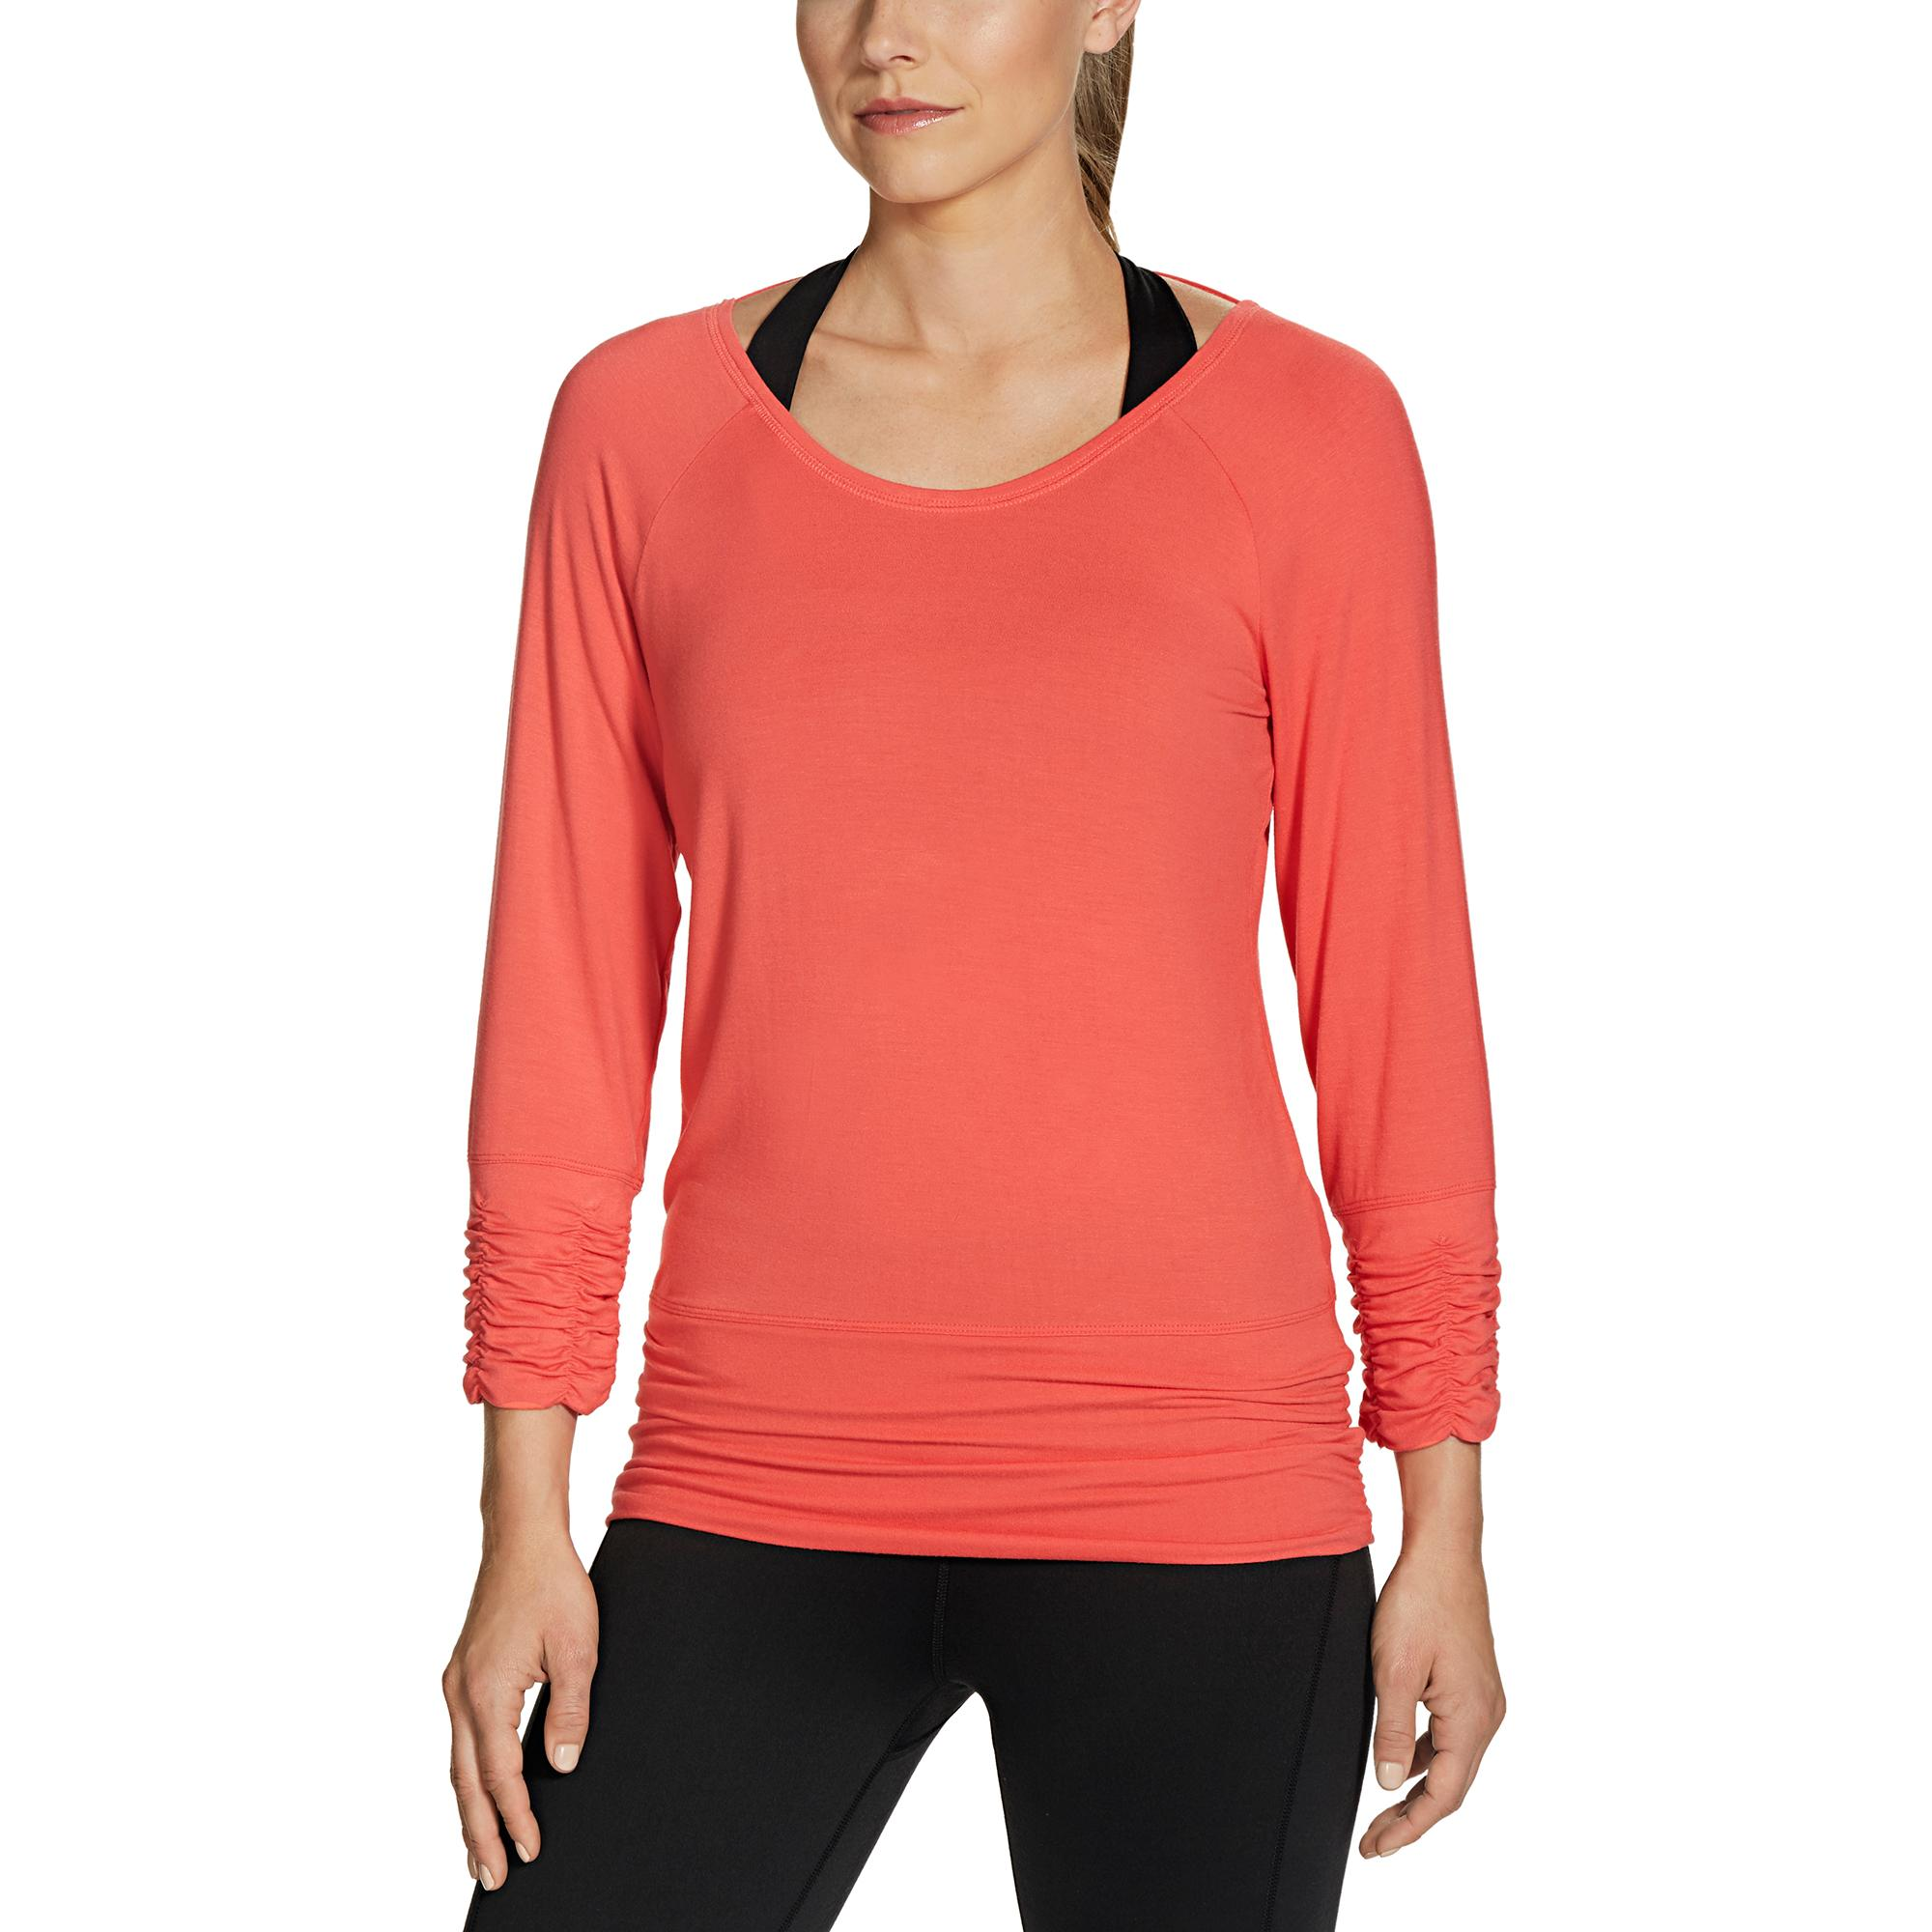 Gaiam Apparel Womens Clover Long Sleeve Tee Sports Jfashion Plaid Tunik Camelia Merah View Larger